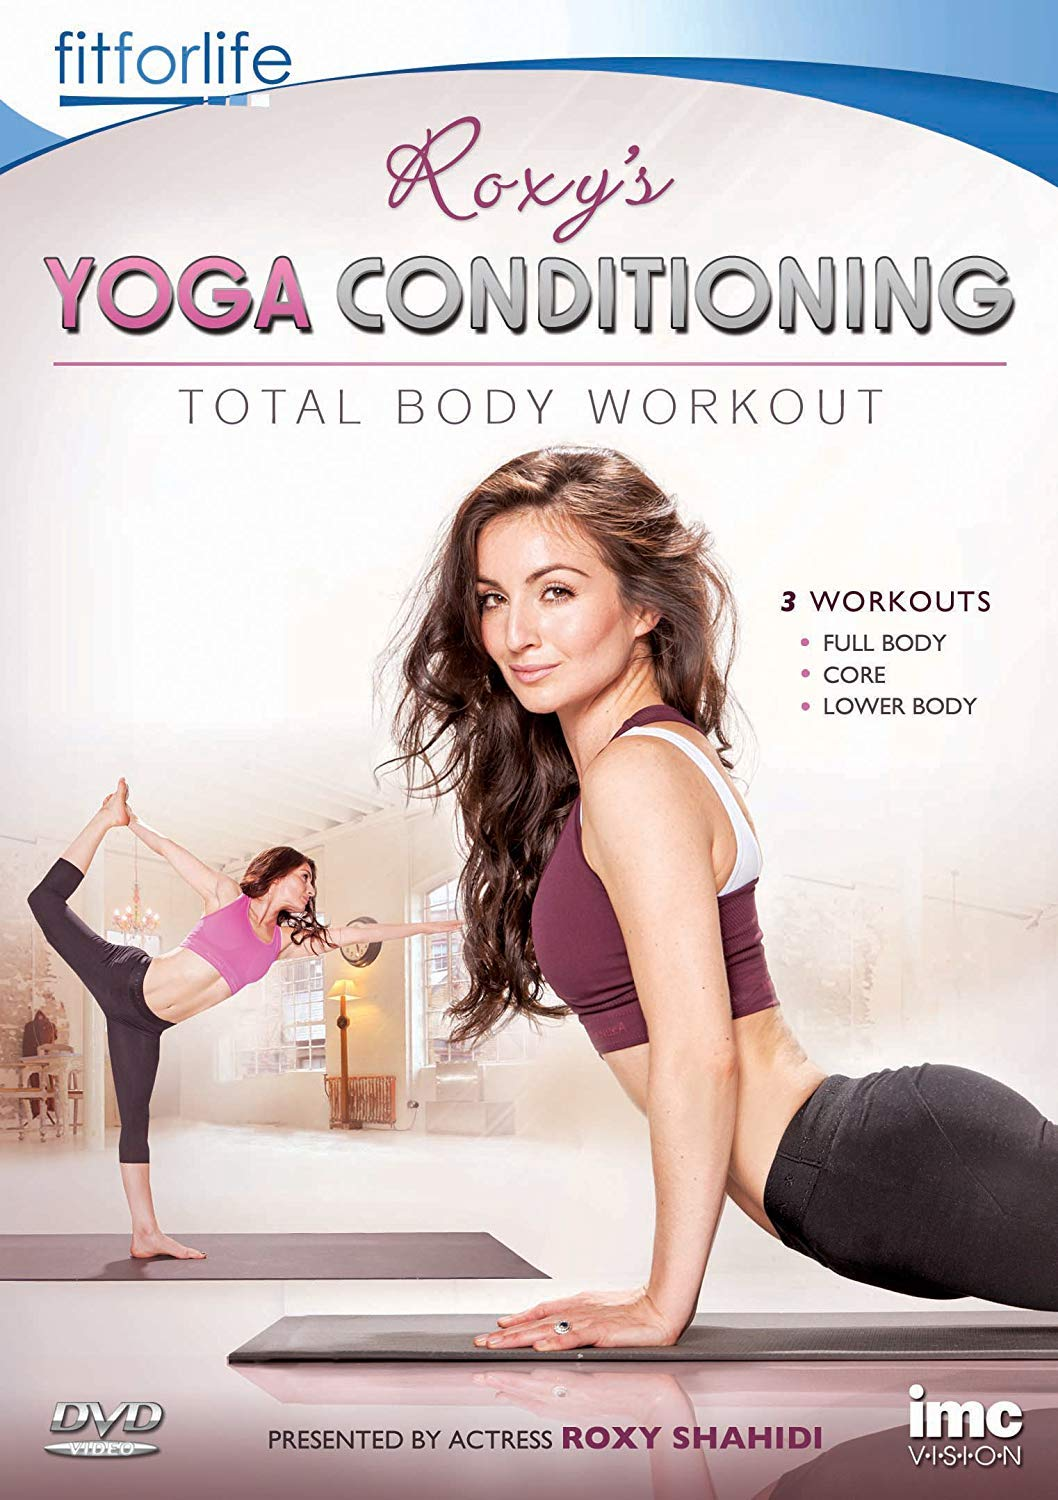 Roxys Yoga Conditioning Total Body Workout - Fit for Life ...